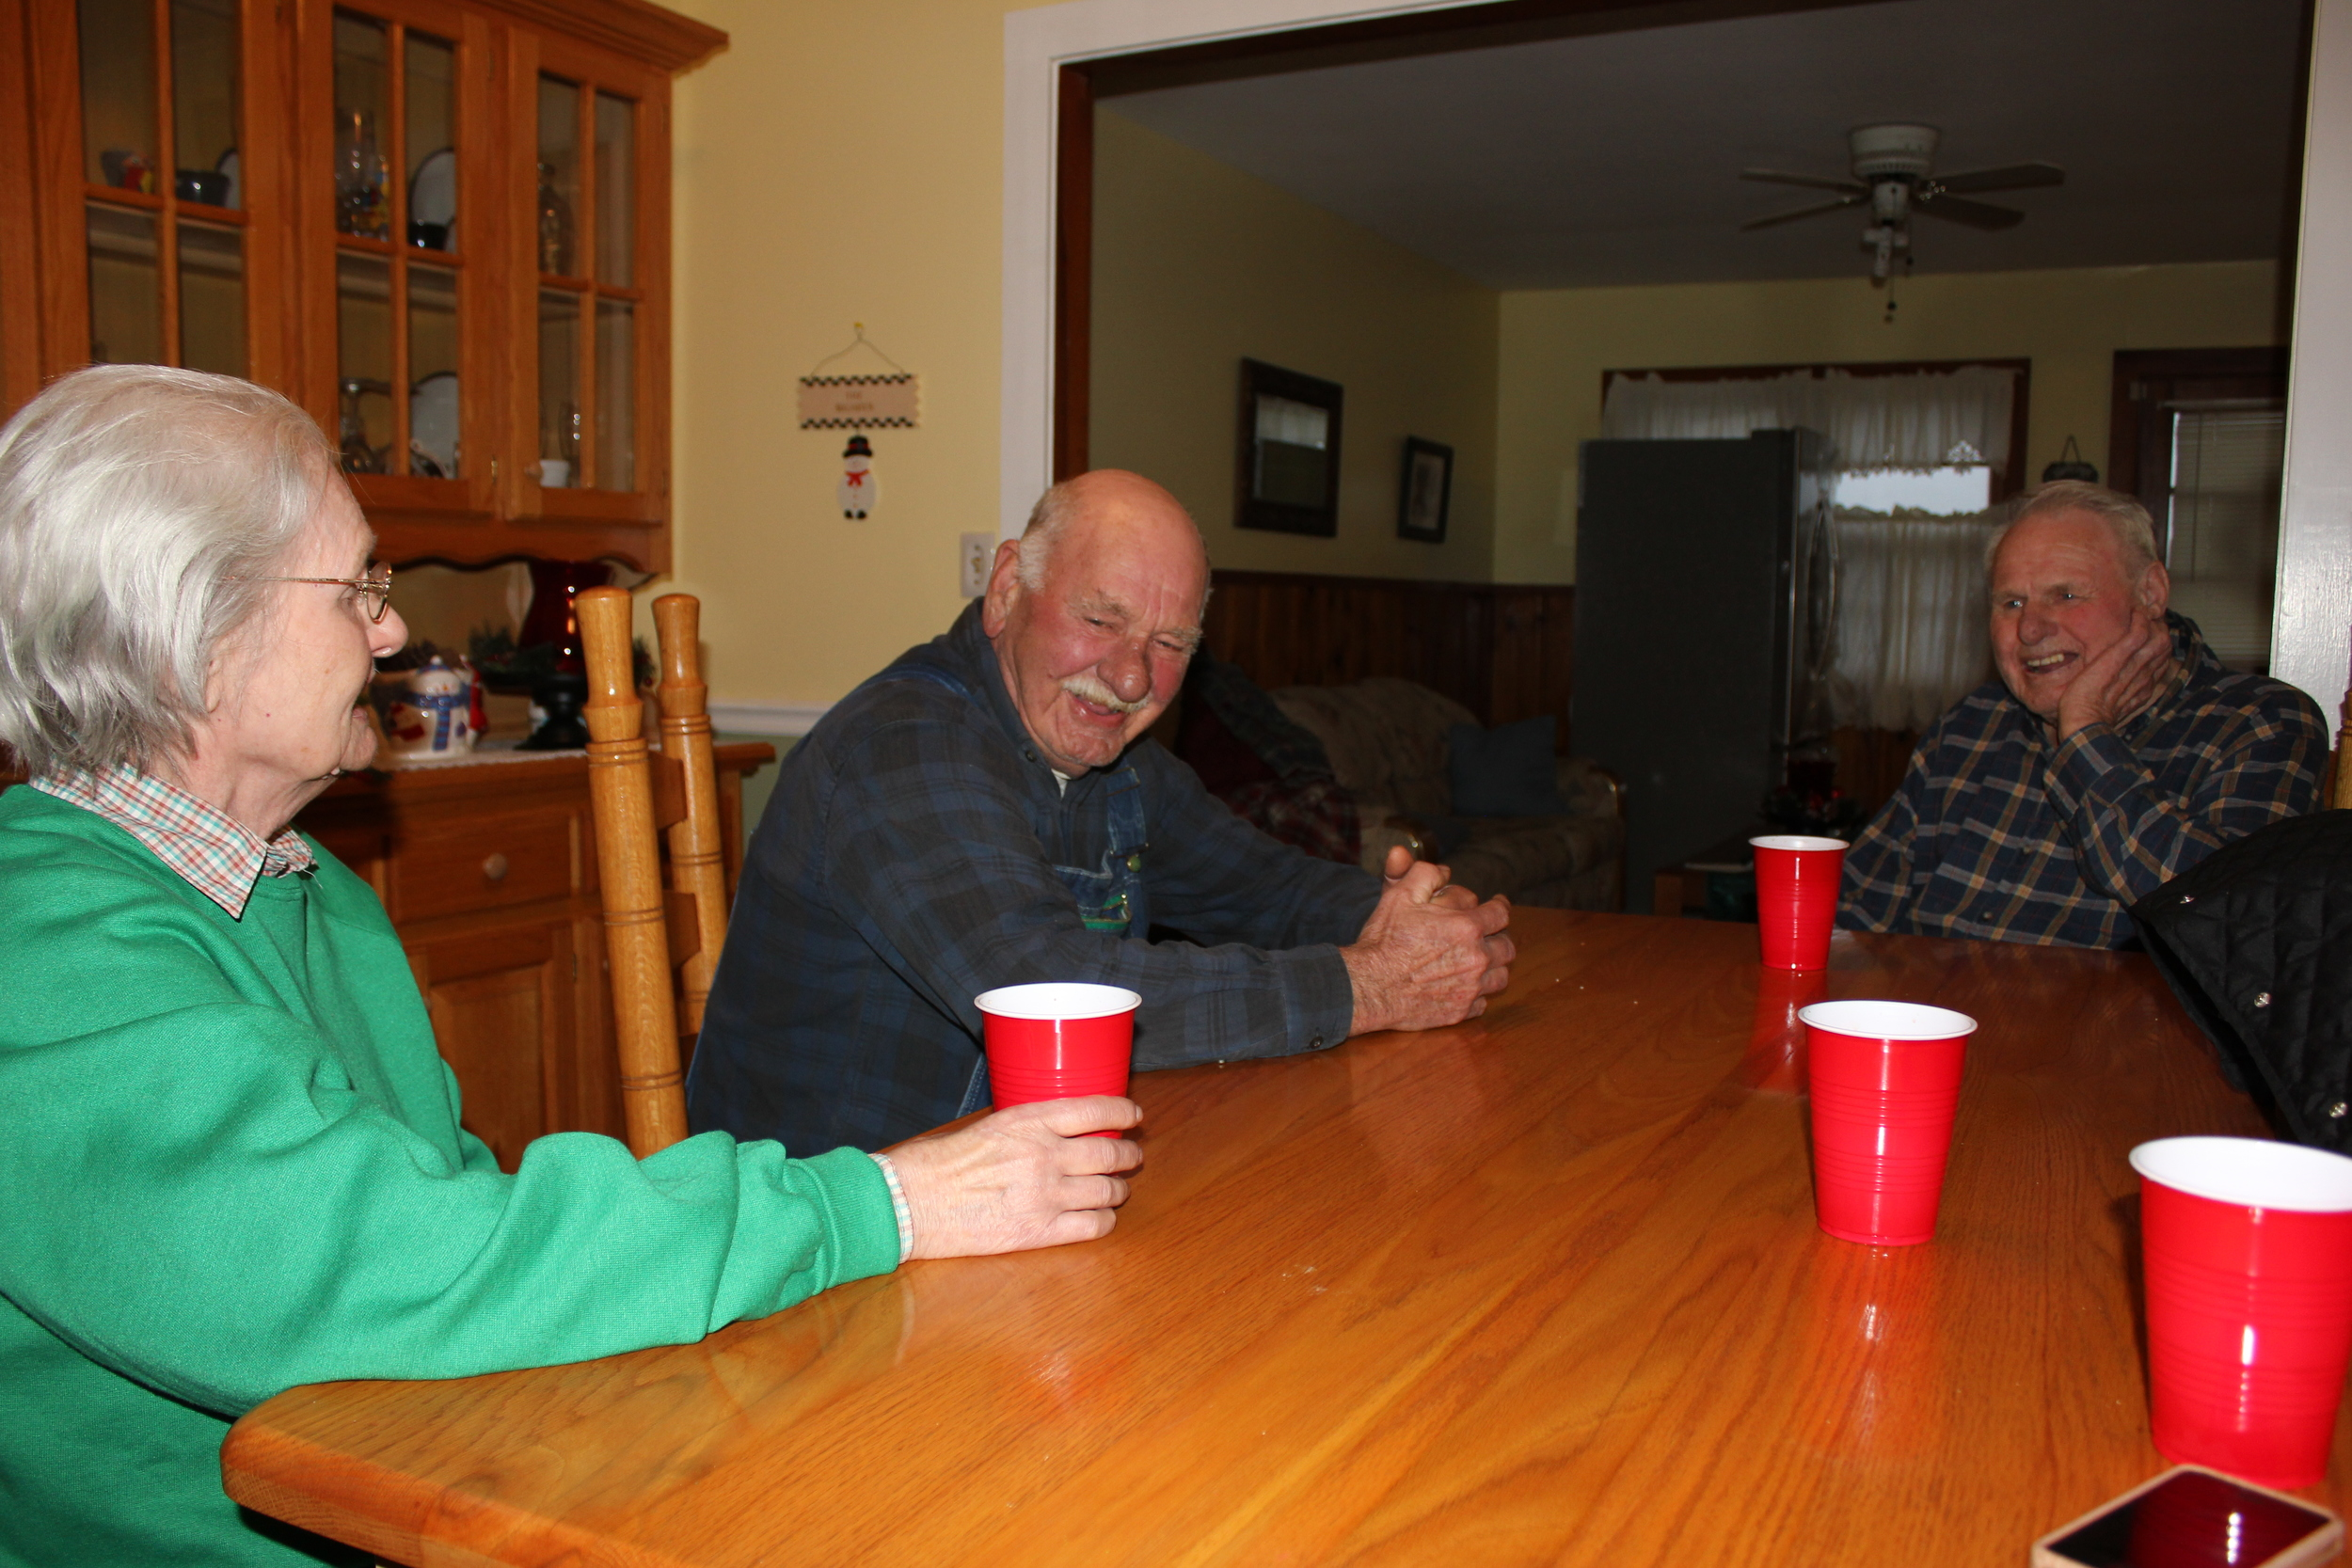 Sitting down with the family. Aunt Reba, Uncle Pug, and Uncle Junior (left to right).